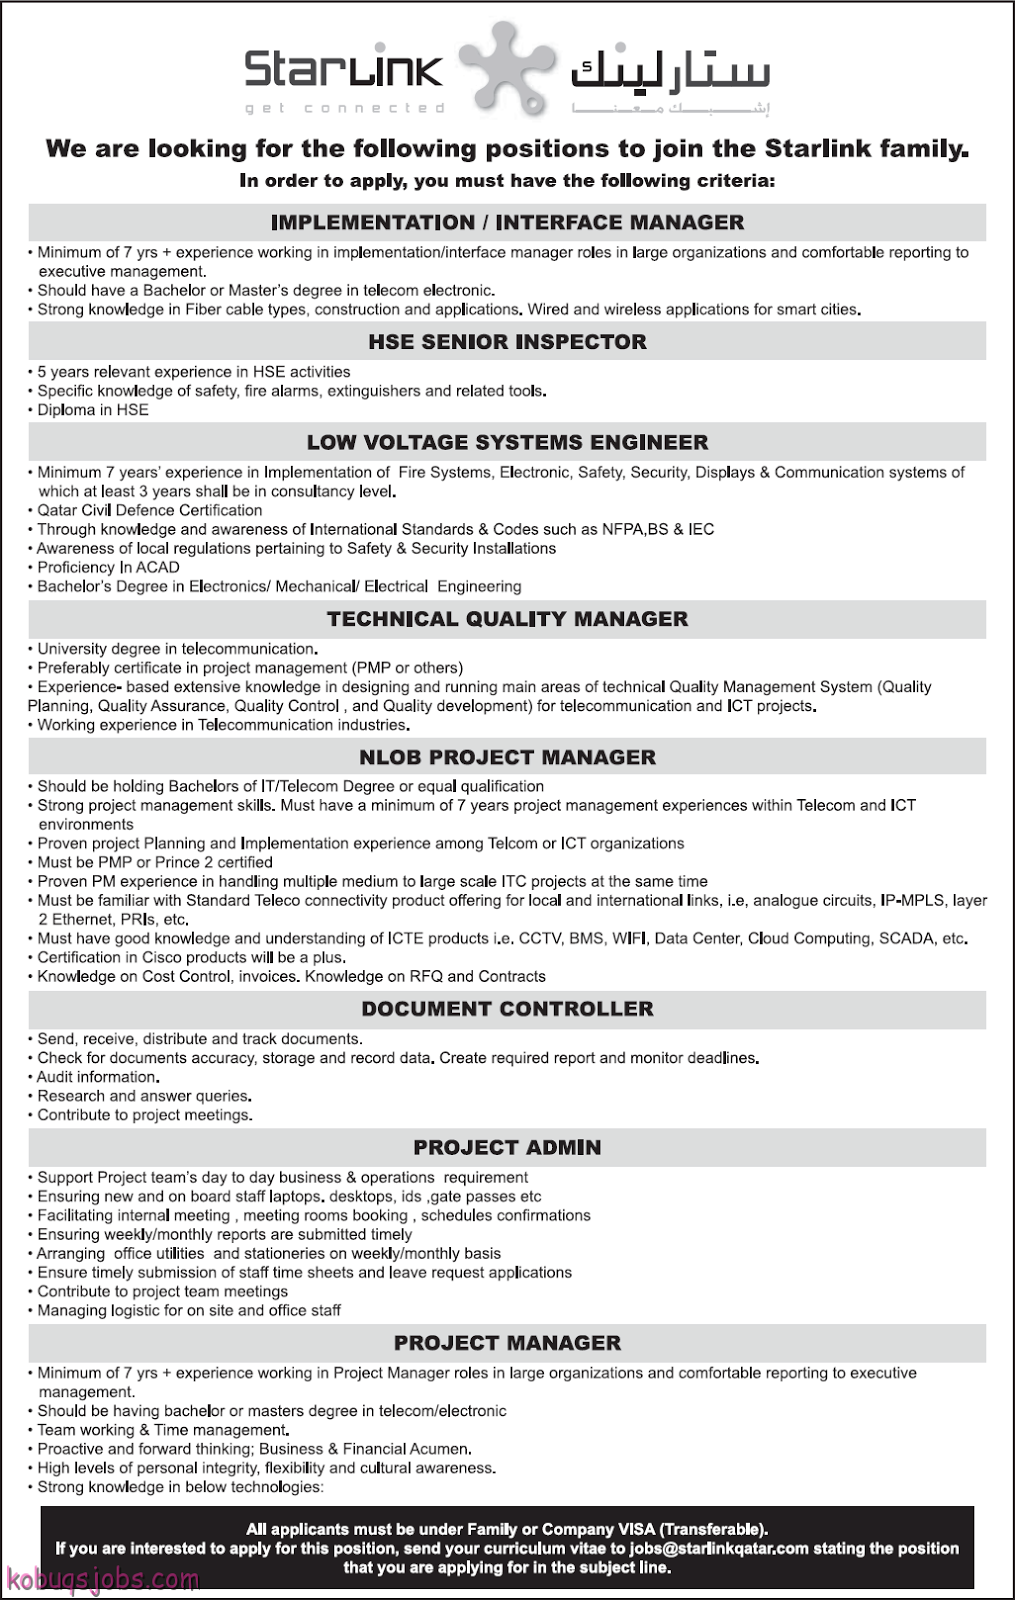 Job Opportunities In Starlink Qatar - Gulf Jobs for Malayalees